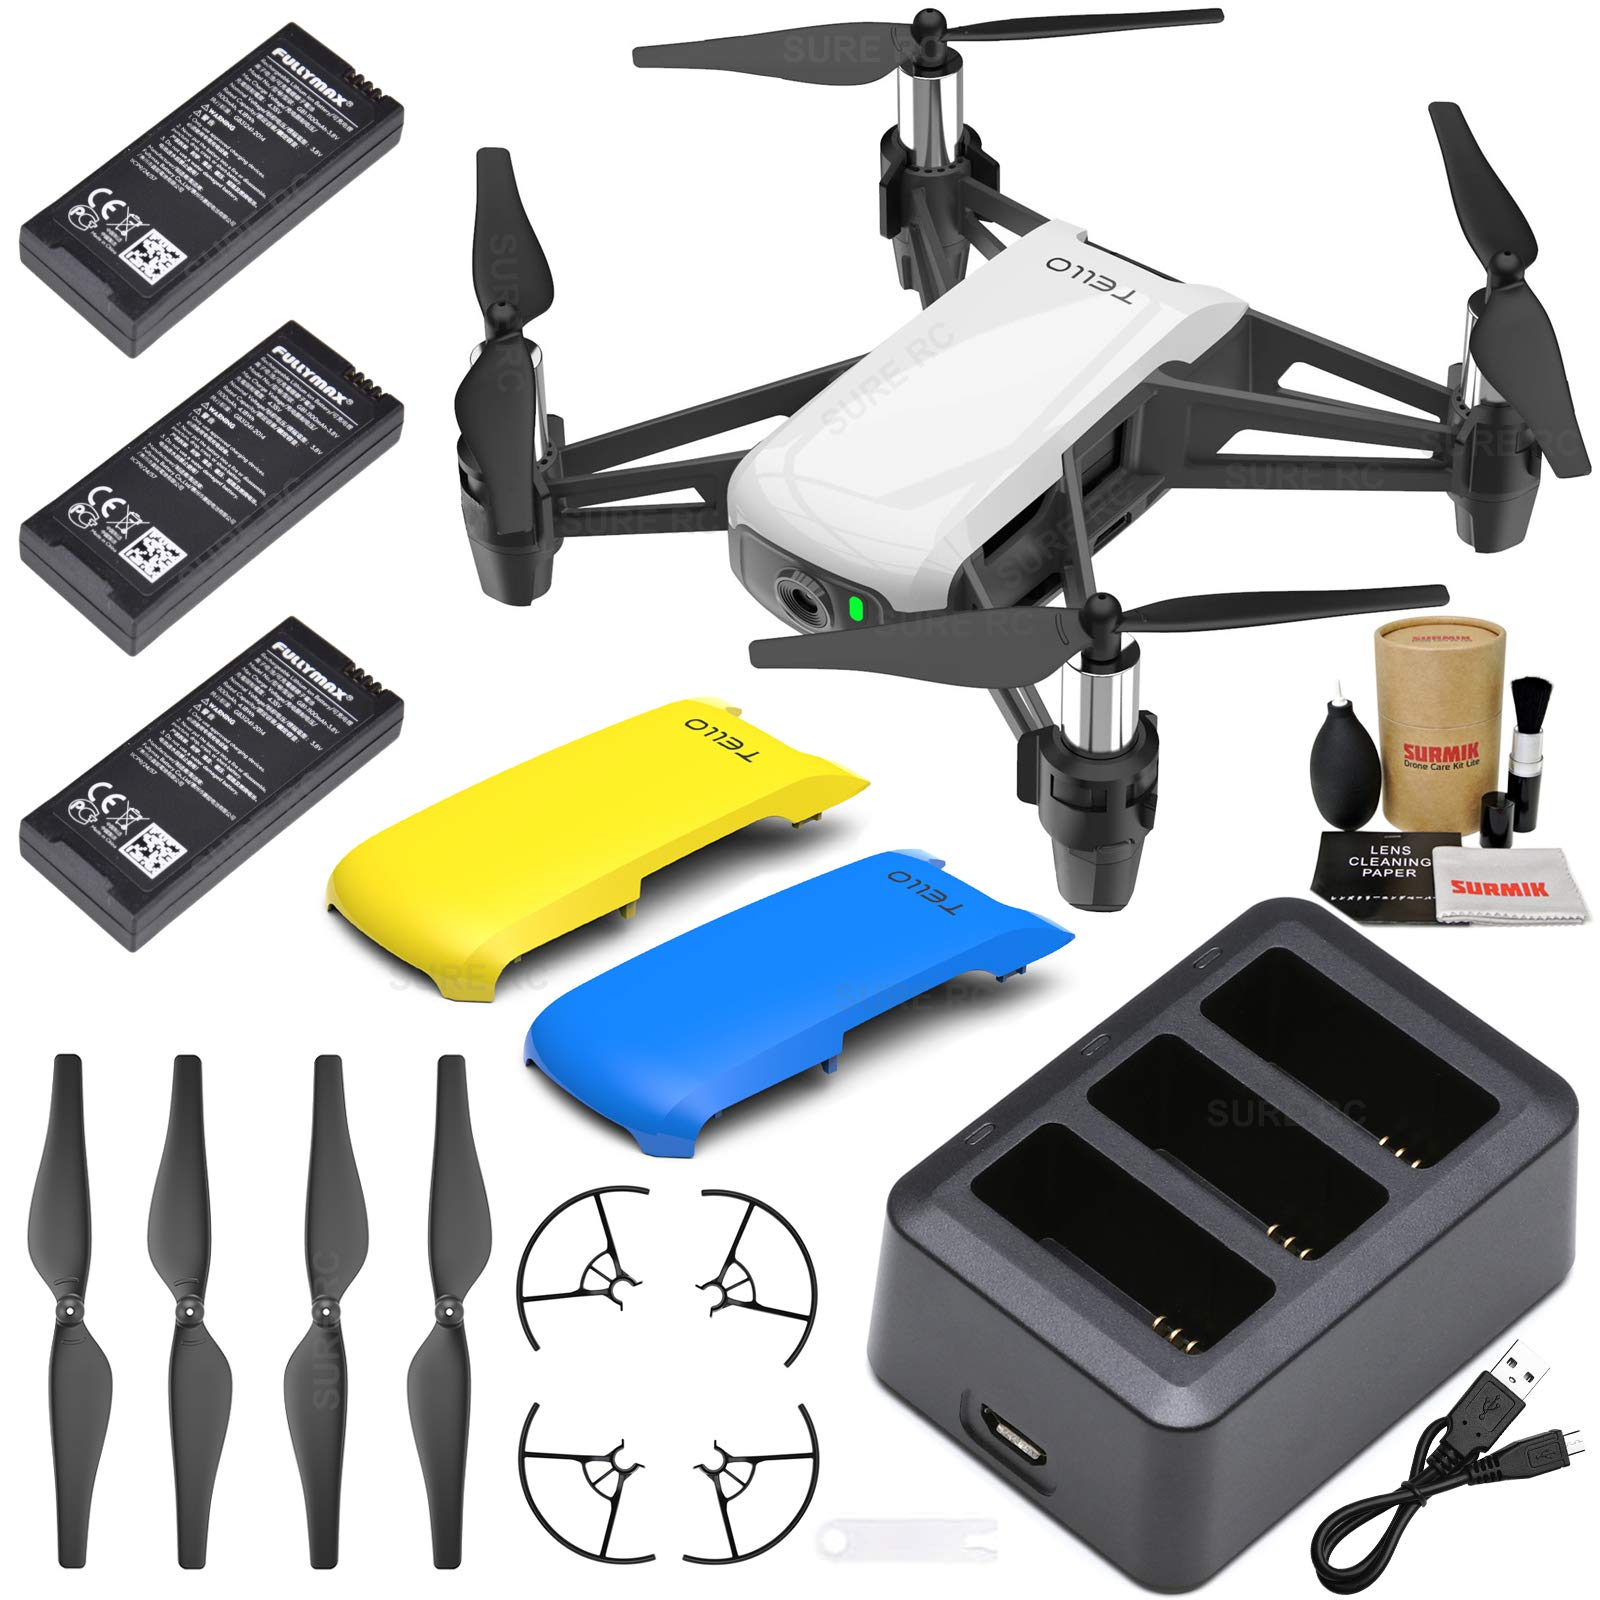 Tello Drone Quadcopter Boost Combo with 3 Batteries, Charging Hub, Yellow &  Blue Snap-On Covers and More | 10Drones